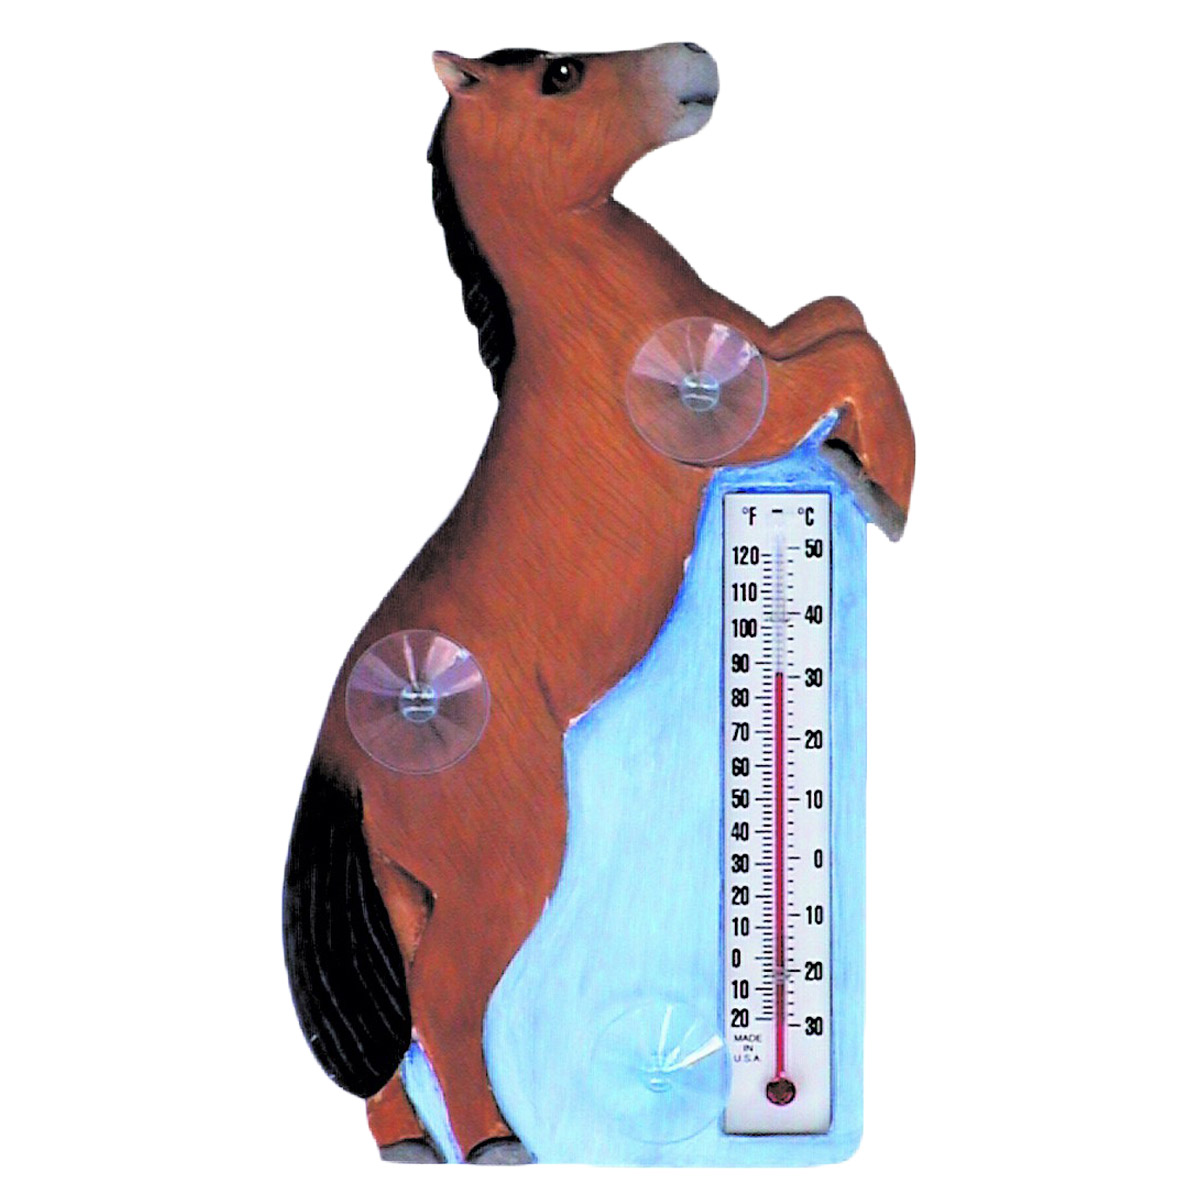 Rearing Horse Window Thermometer